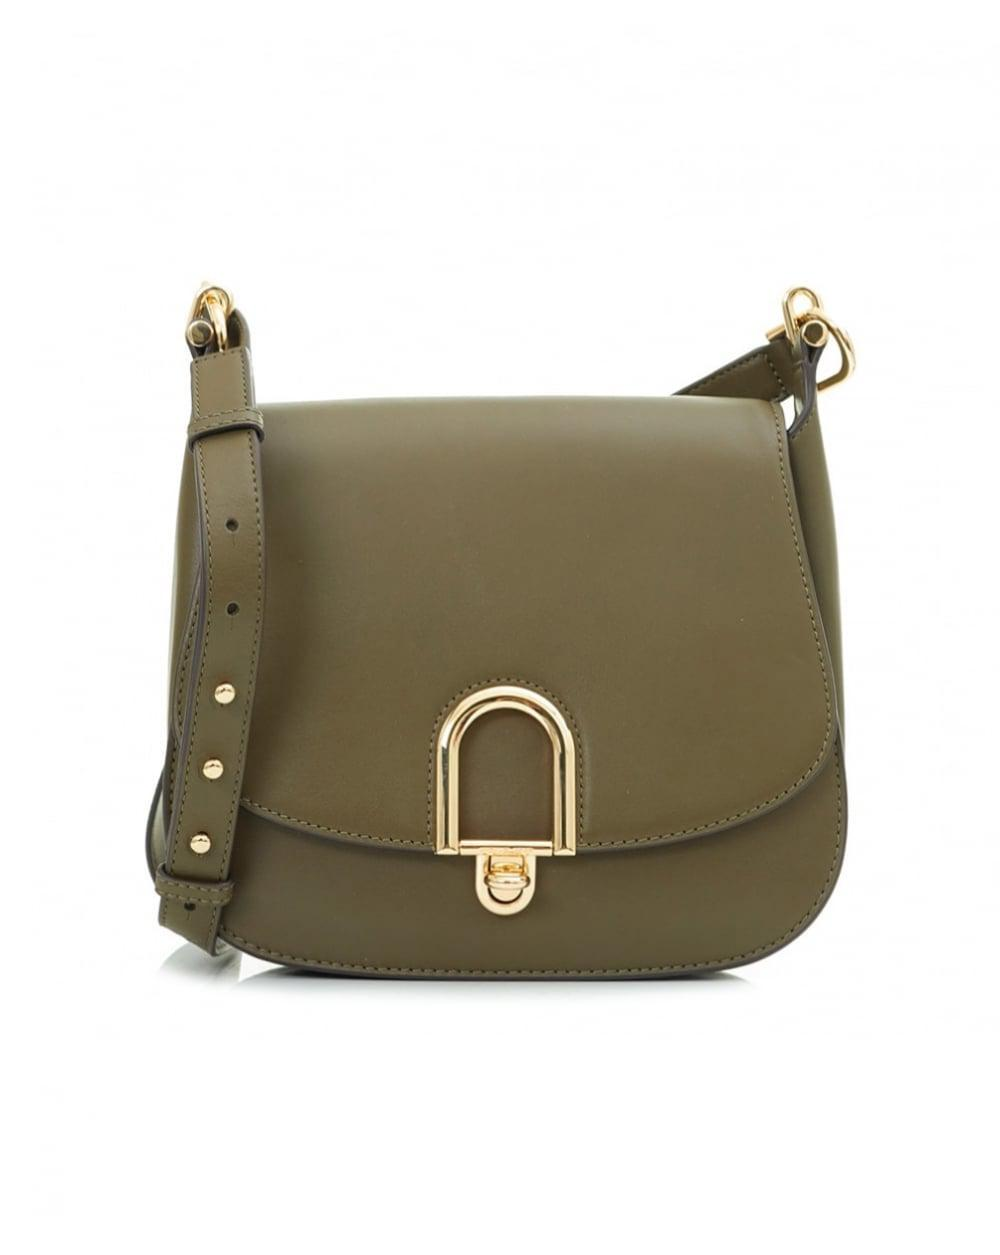 88a4cf7c4cac Michael Kors Delfina Large Leather Saddle Bag in Green - Lyst